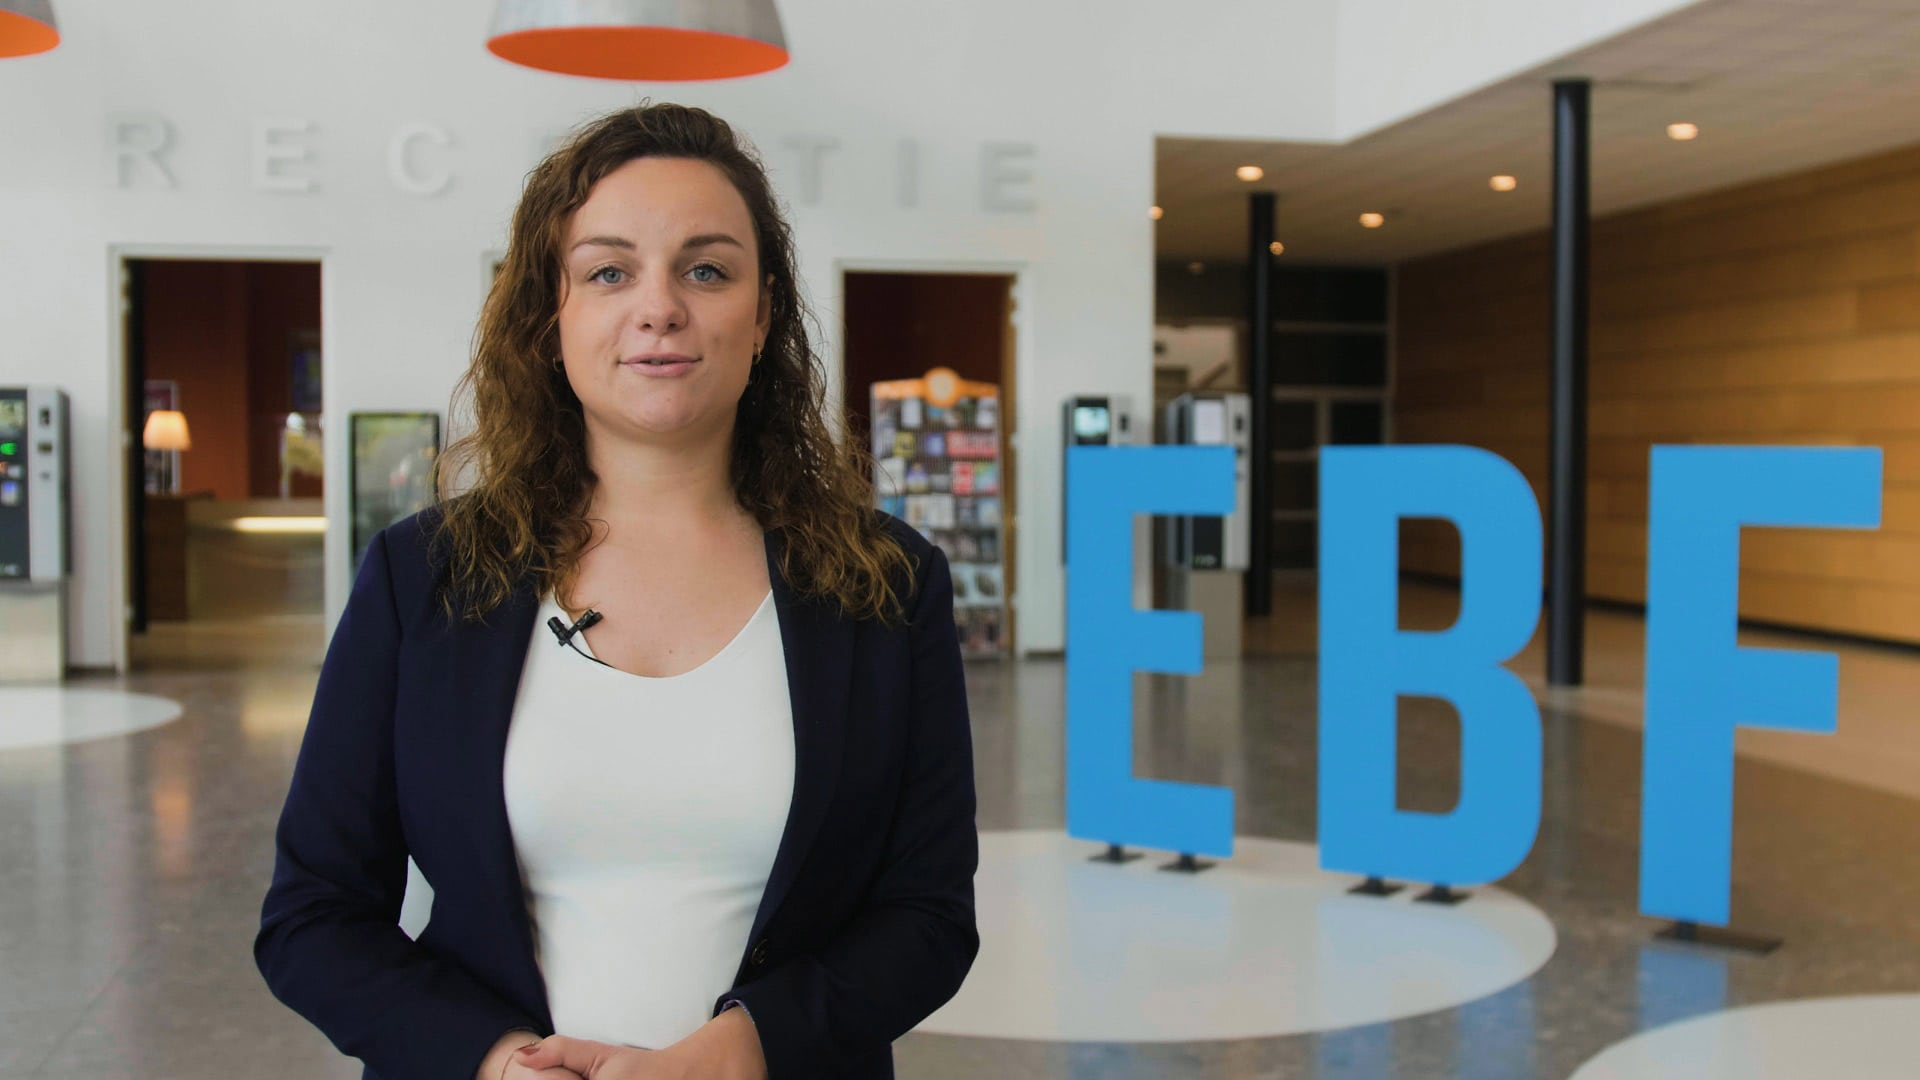 EBF Conference Aftermovie 2020 interview vrouw